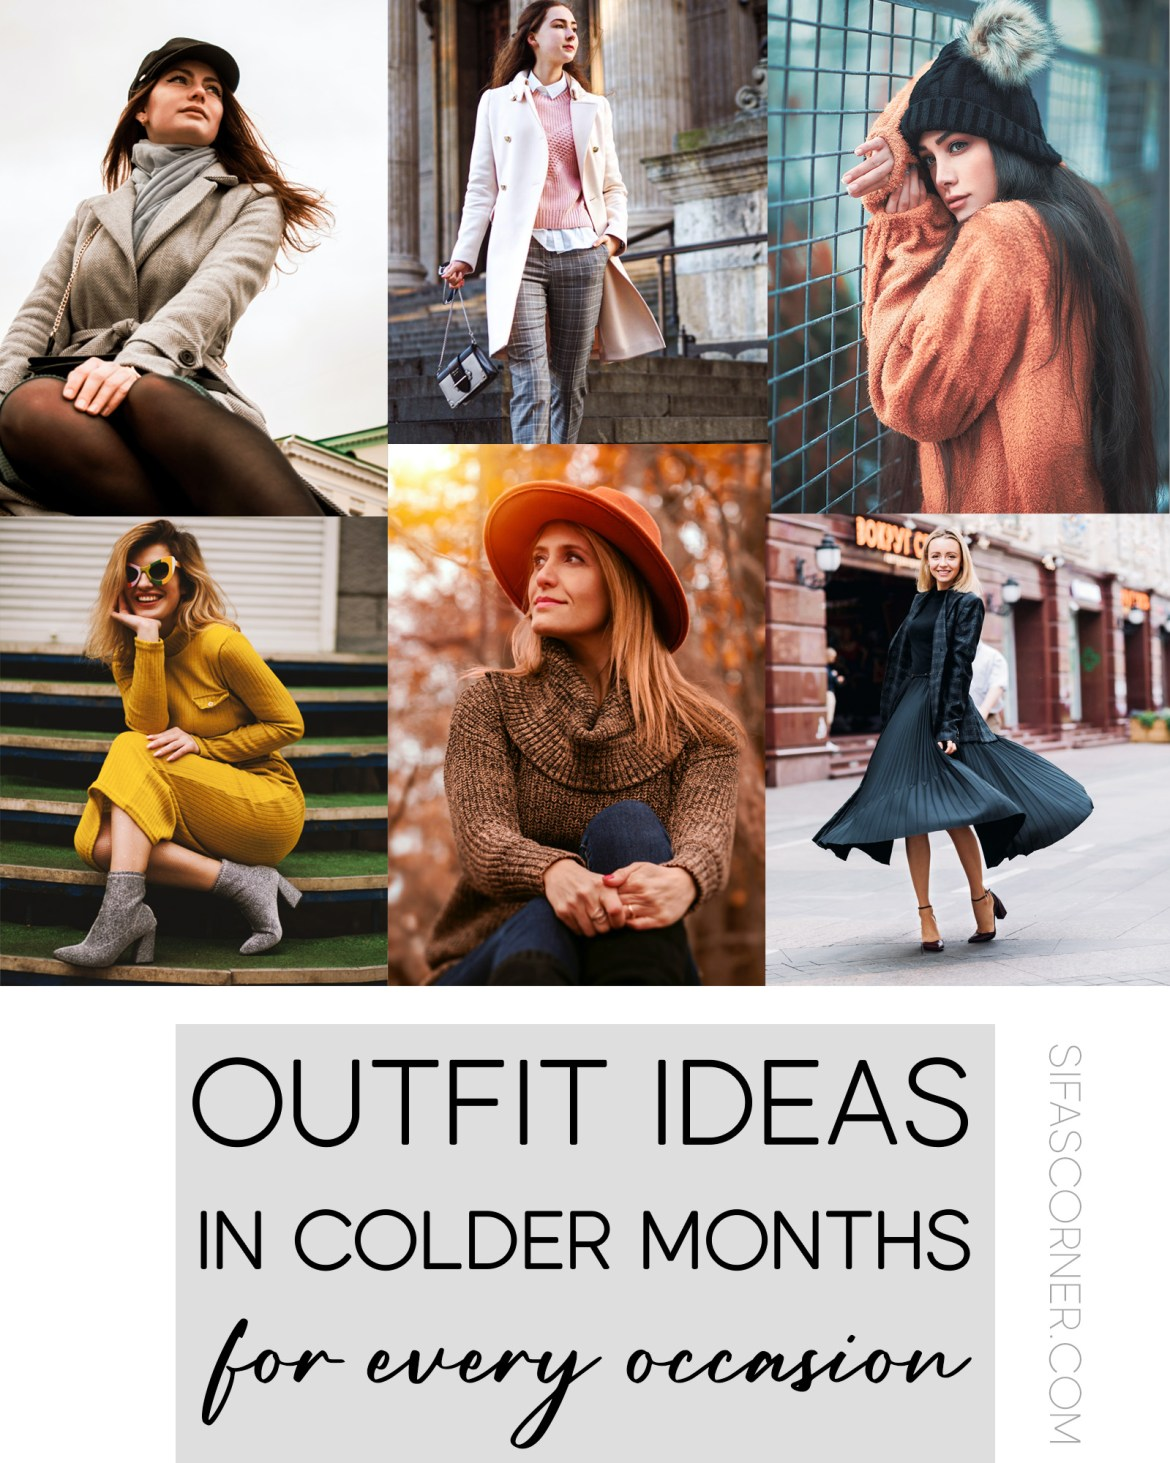 Outfit Ideas for Colder Months